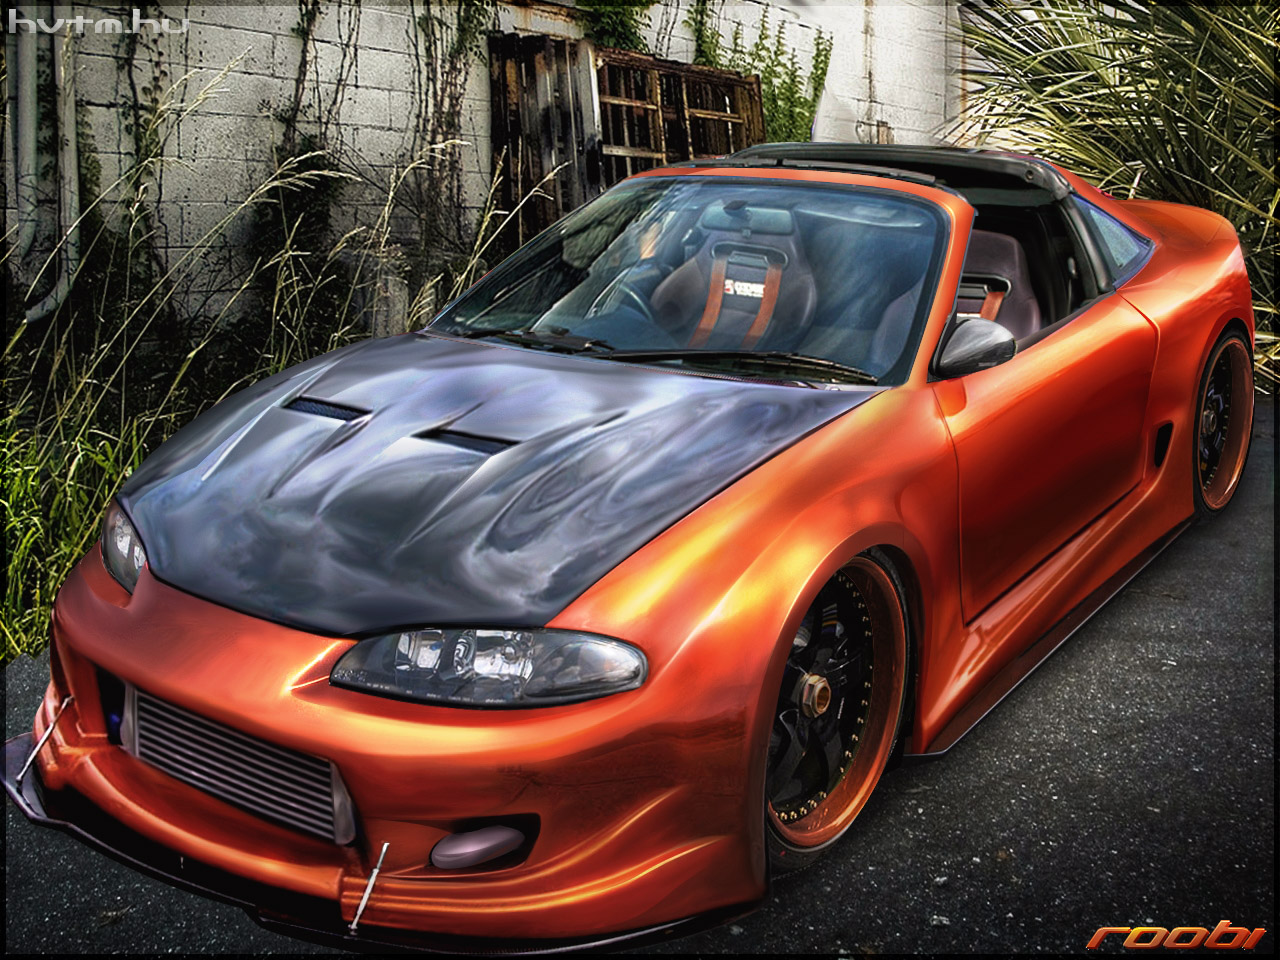 The Total Tuning Mitsubishi Eclipse